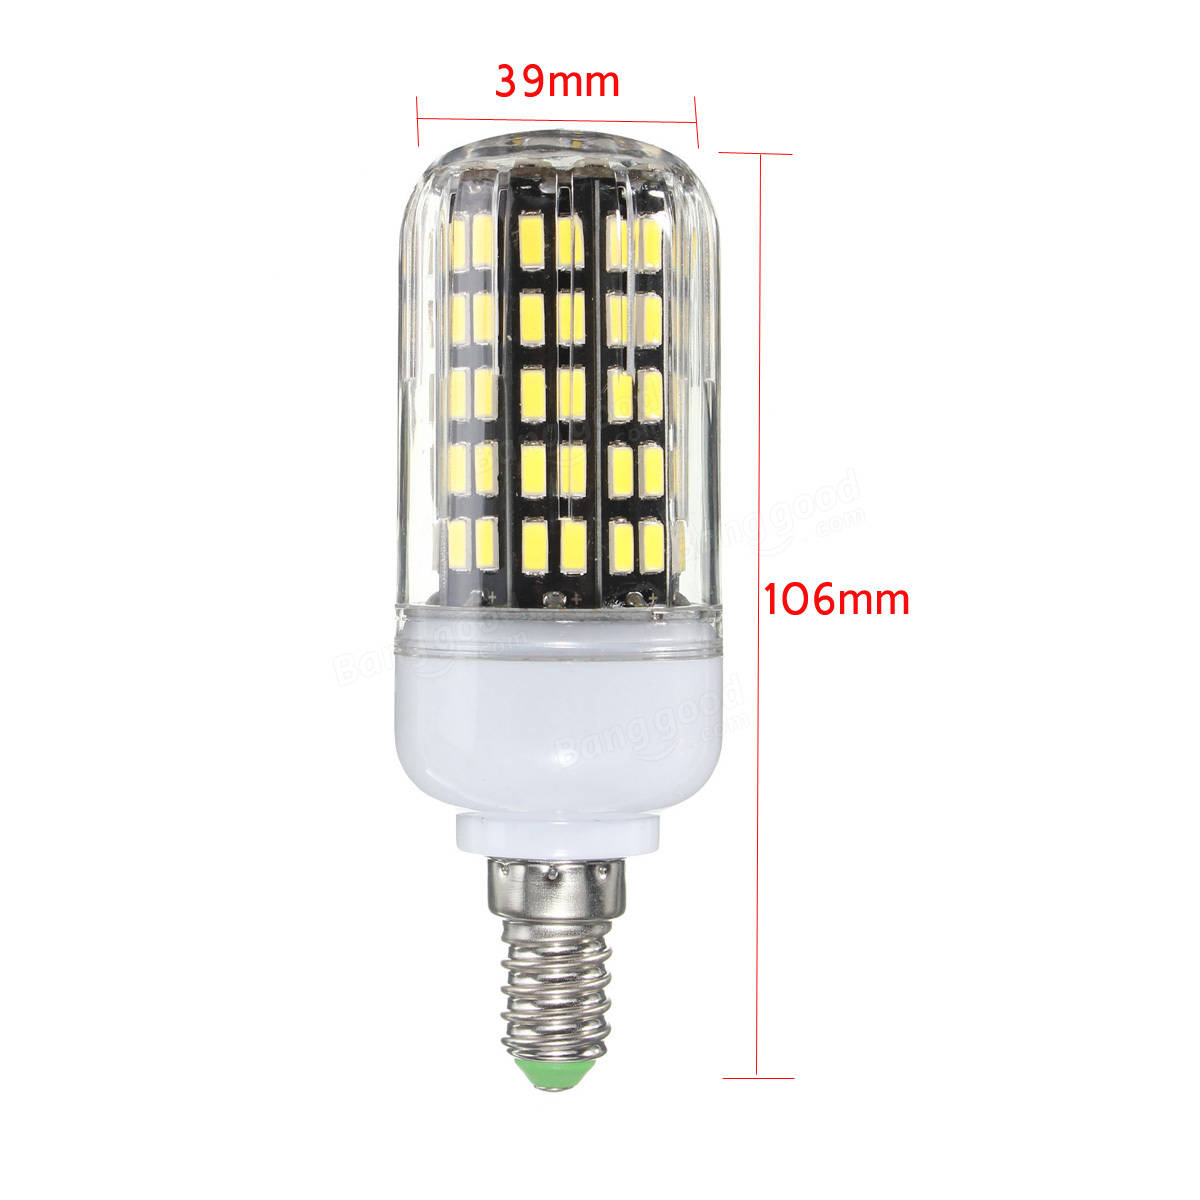 e27 e14 b22 10w 108 smd 5733 1250lm led couvercle lampe la lumi re de ma s ampoule ac220v. Black Bedroom Furniture Sets. Home Design Ideas